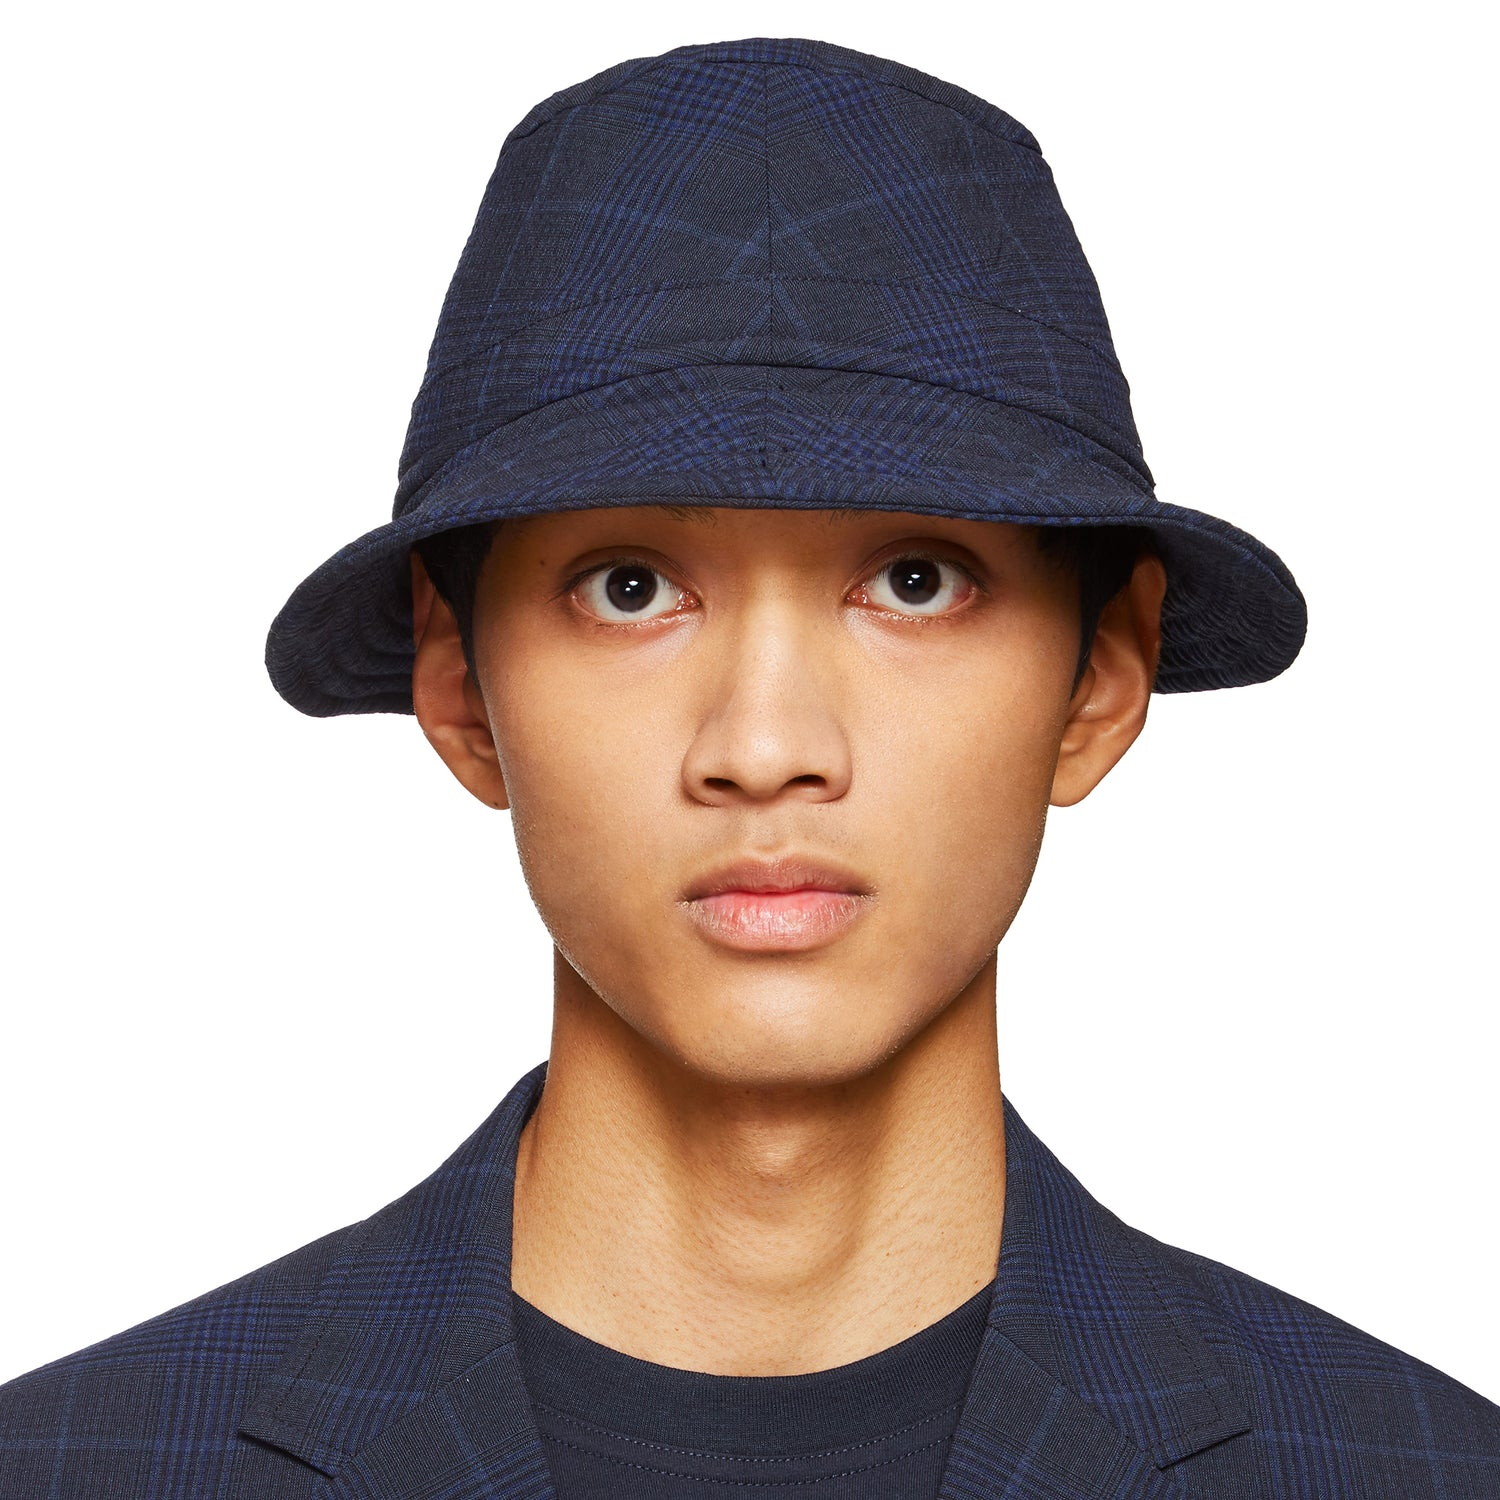 SEERSUCKER NAVY BUCKET HAT